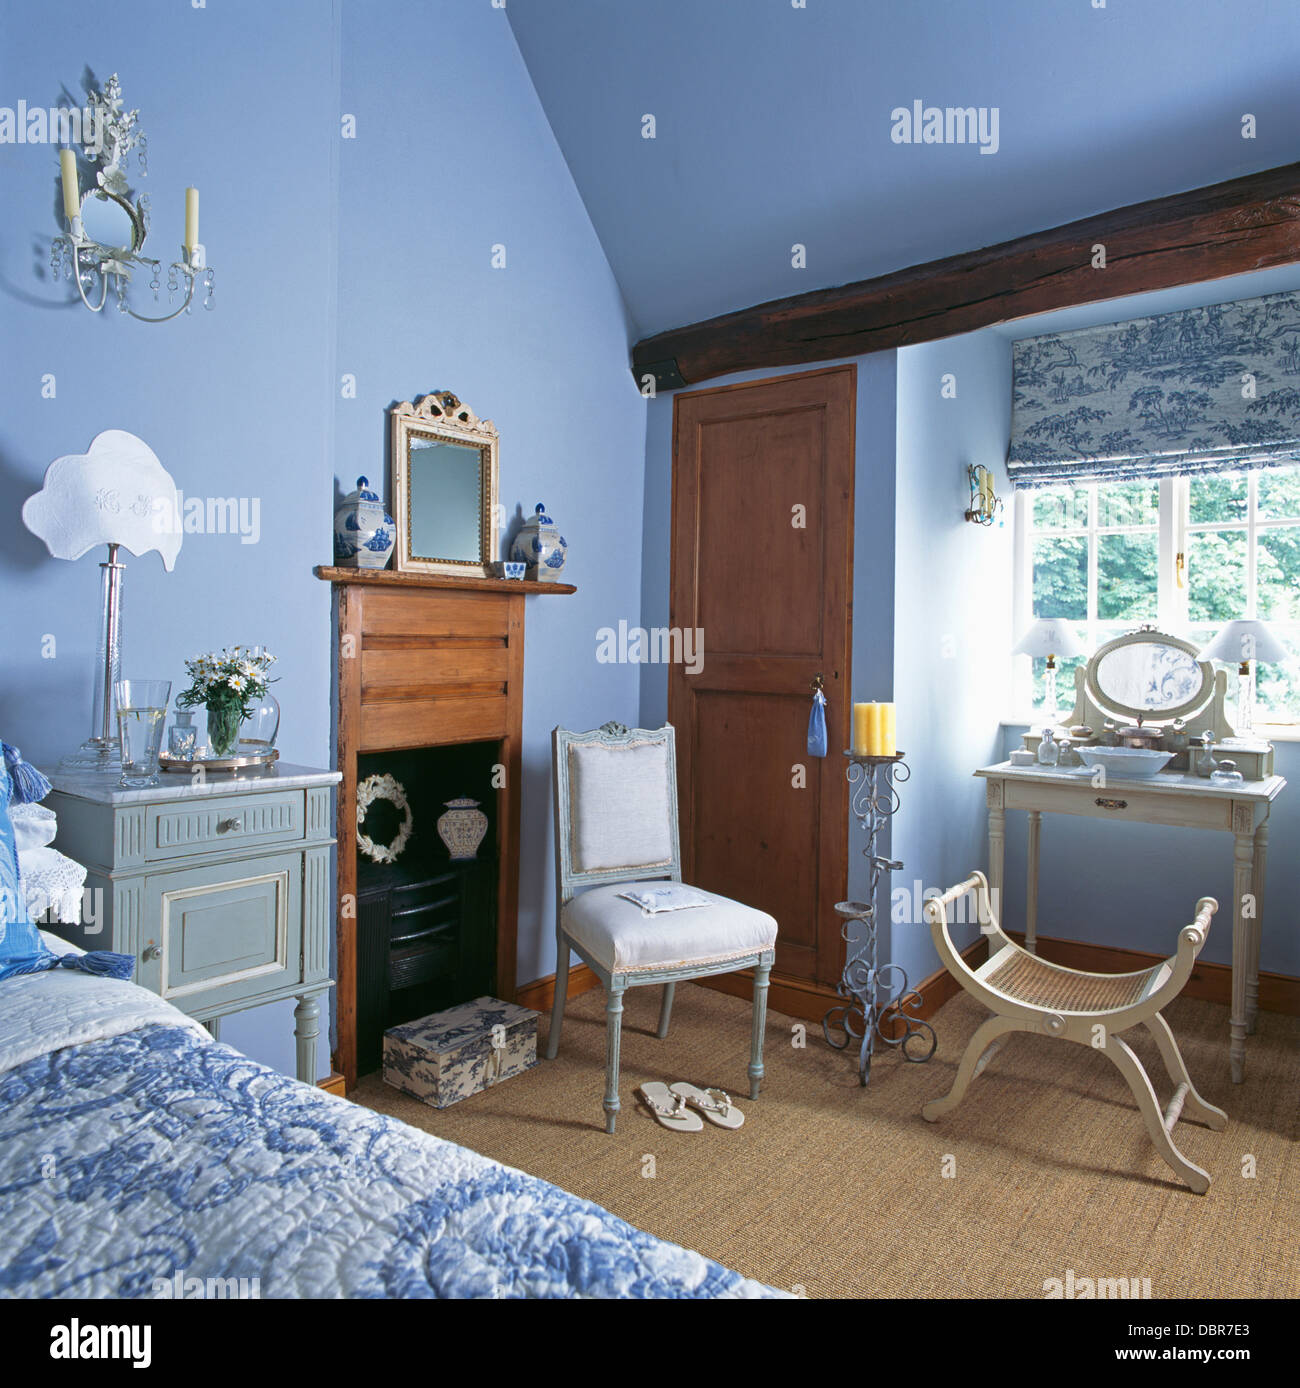 Blue White Toile De Jouy Blind On Window Above Small Dressing Table In Pale Blue Country Bedroom With Fireplace Stock Photo Alamy